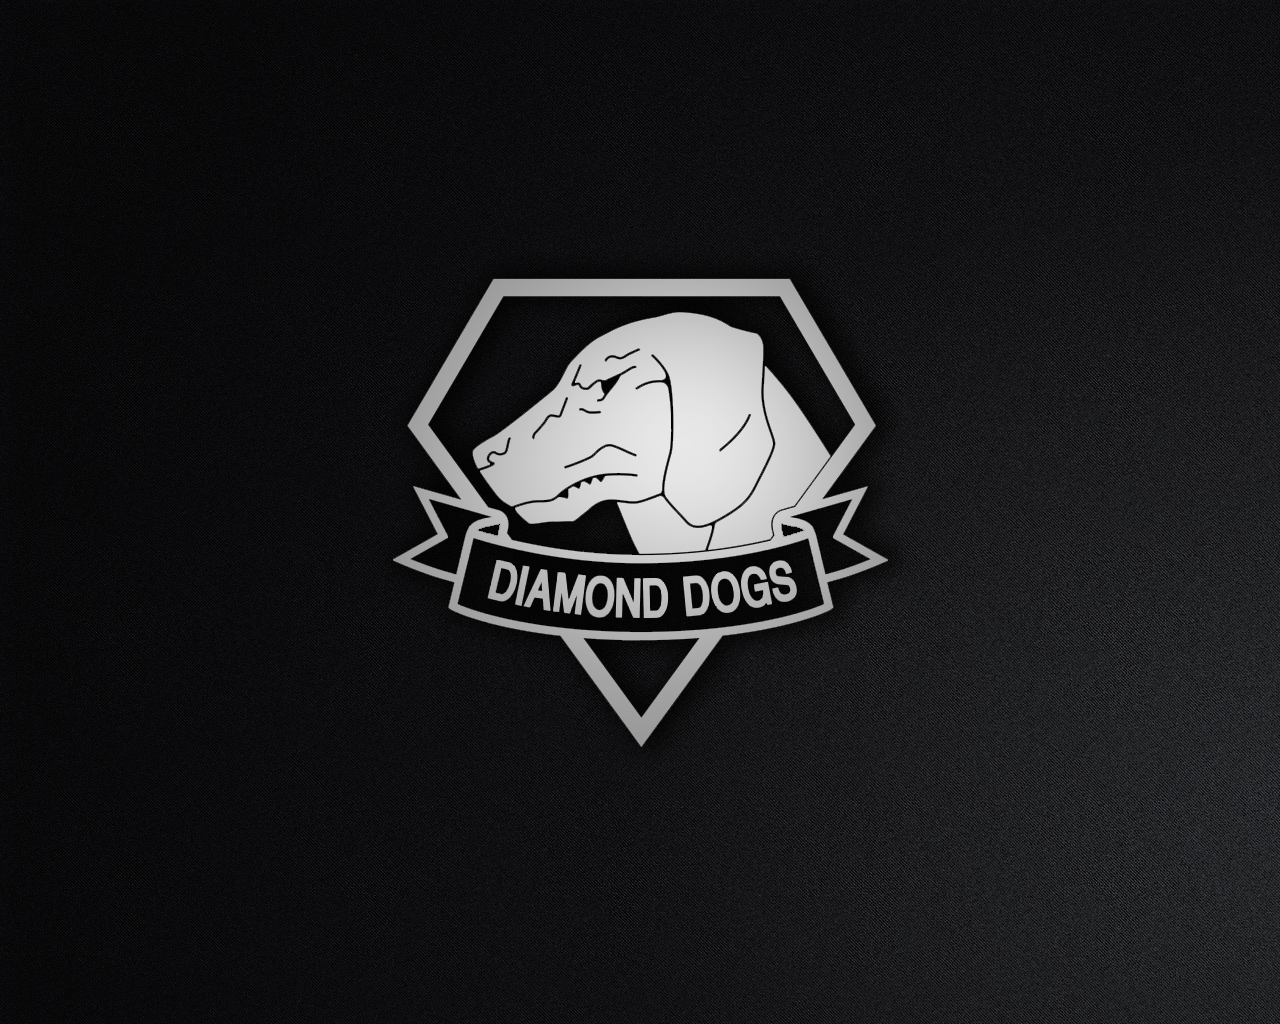 Diamond Dogs Black and White by Chemyakin 1280x1024